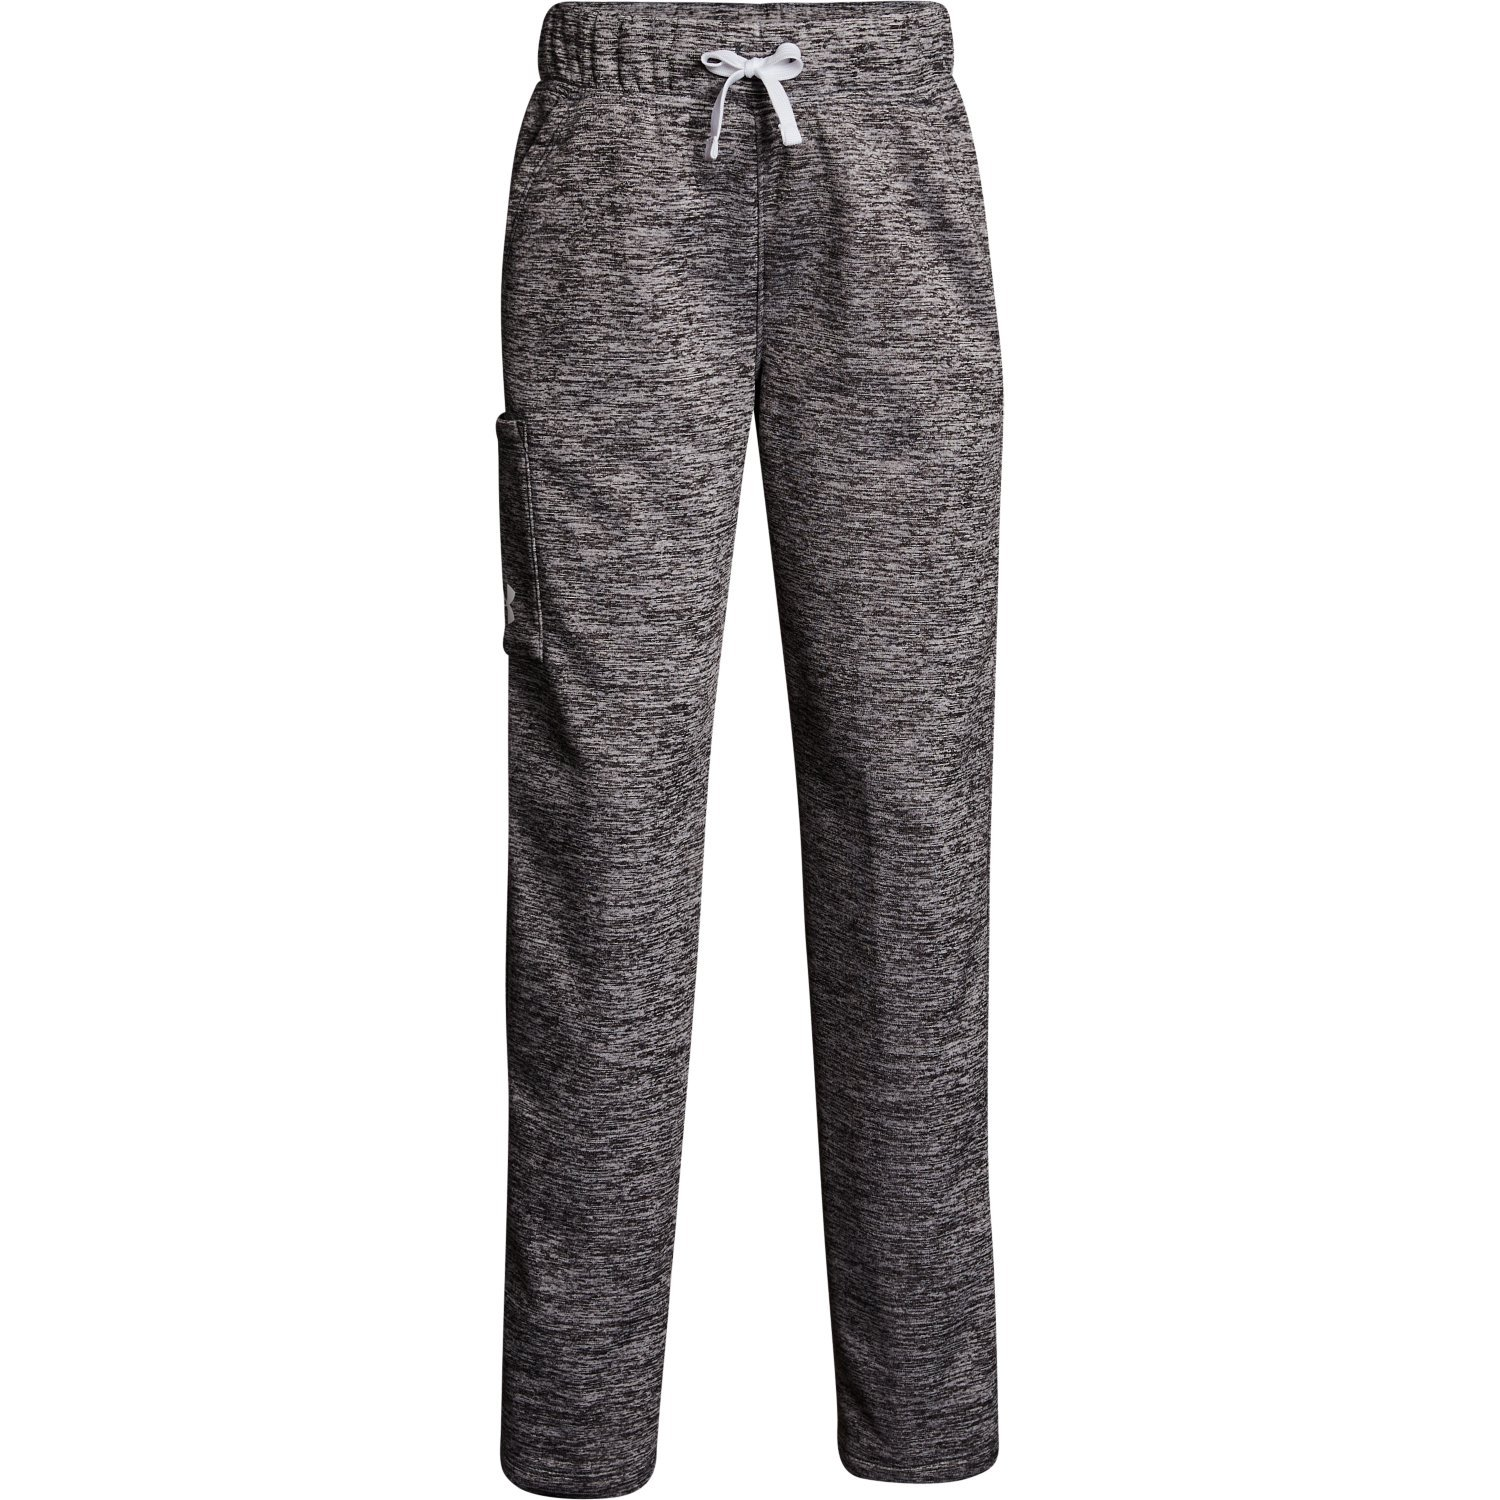 Under Armour Girl's Armour Fleece Pant Stealth Grey/White Size Medium by Under Armour